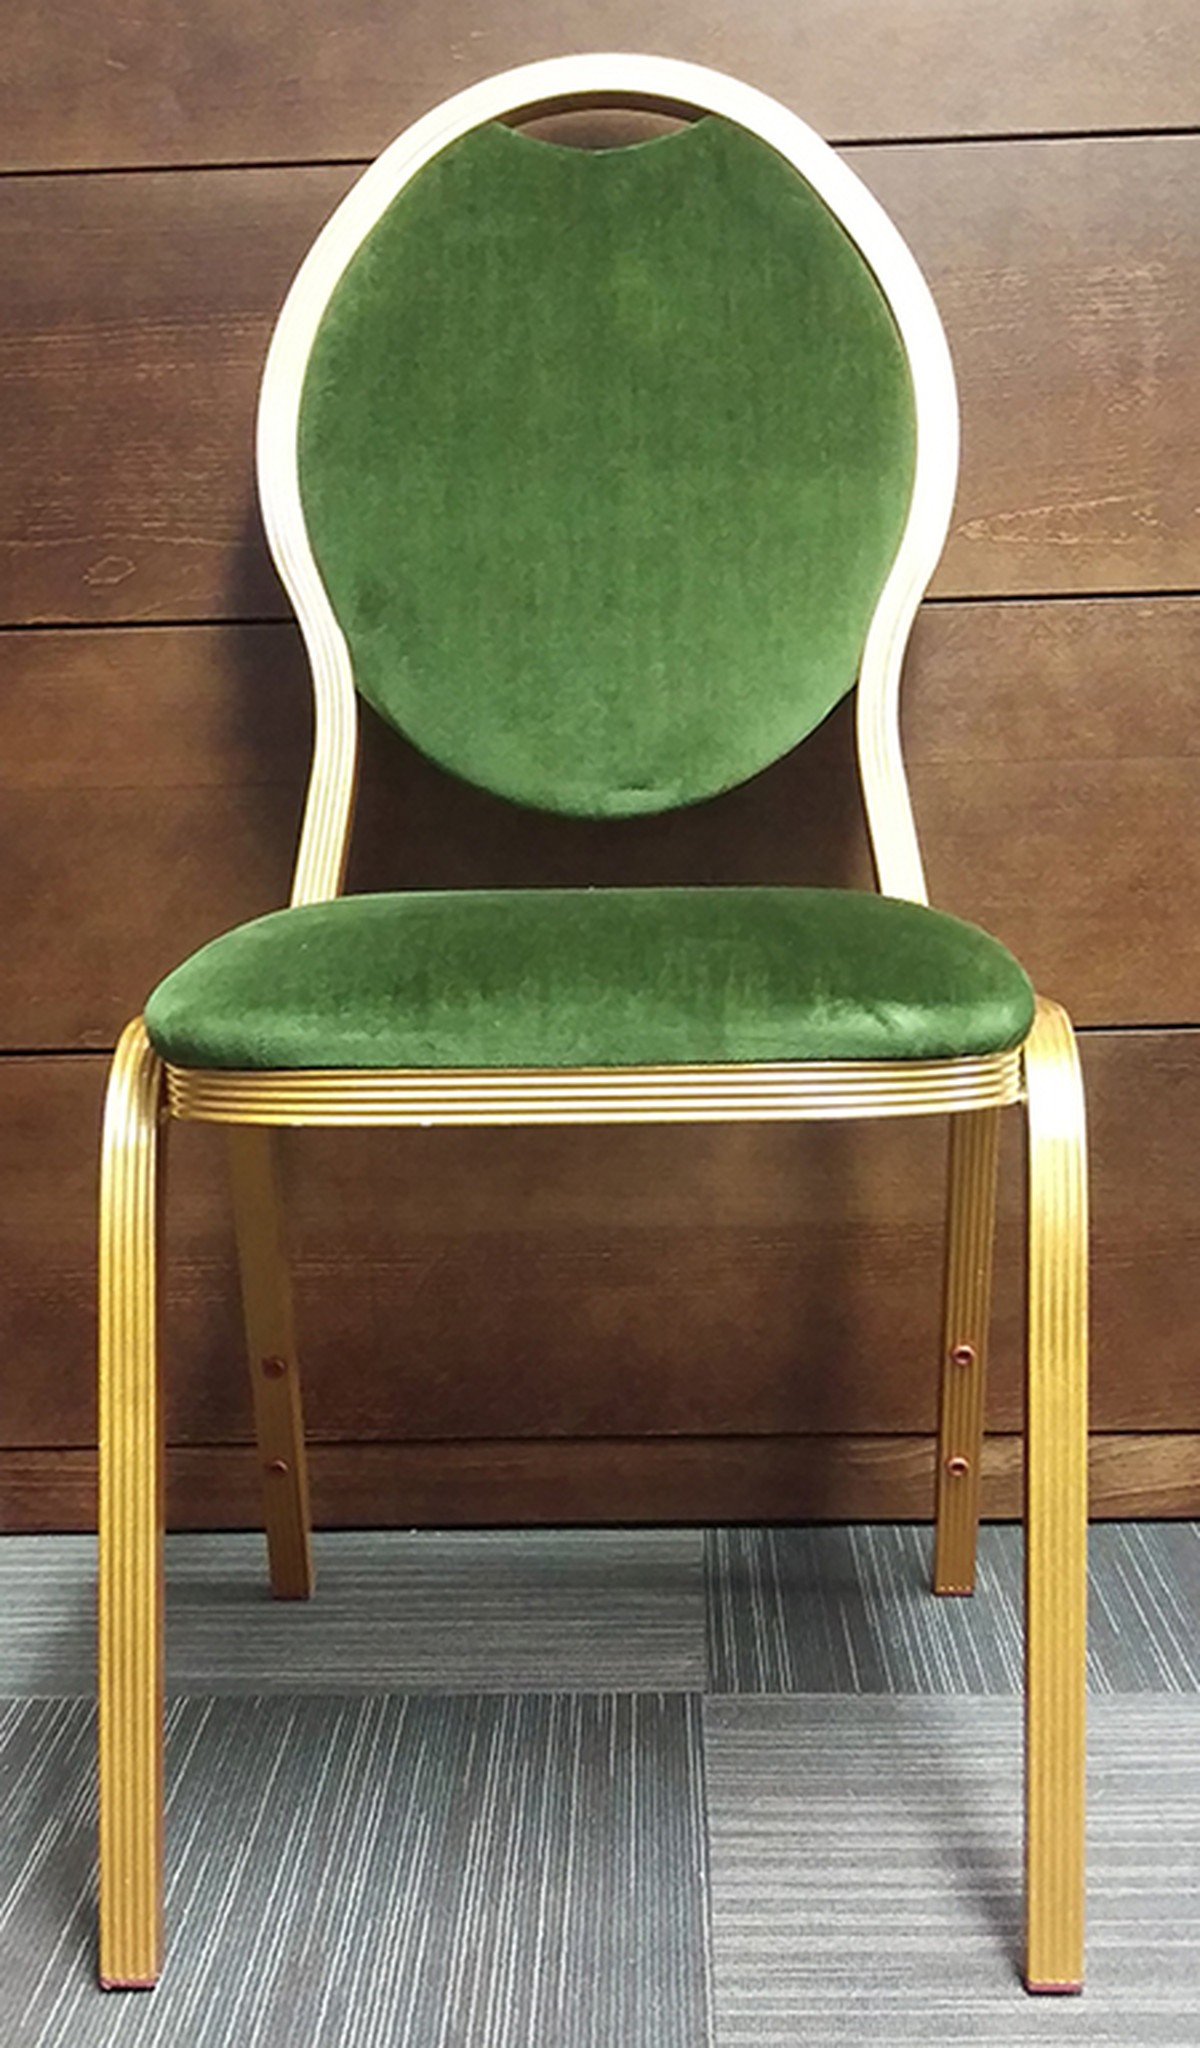 dark green recliner chair convertible ottoman secondhand vintage and reclaimed mayfair furniture